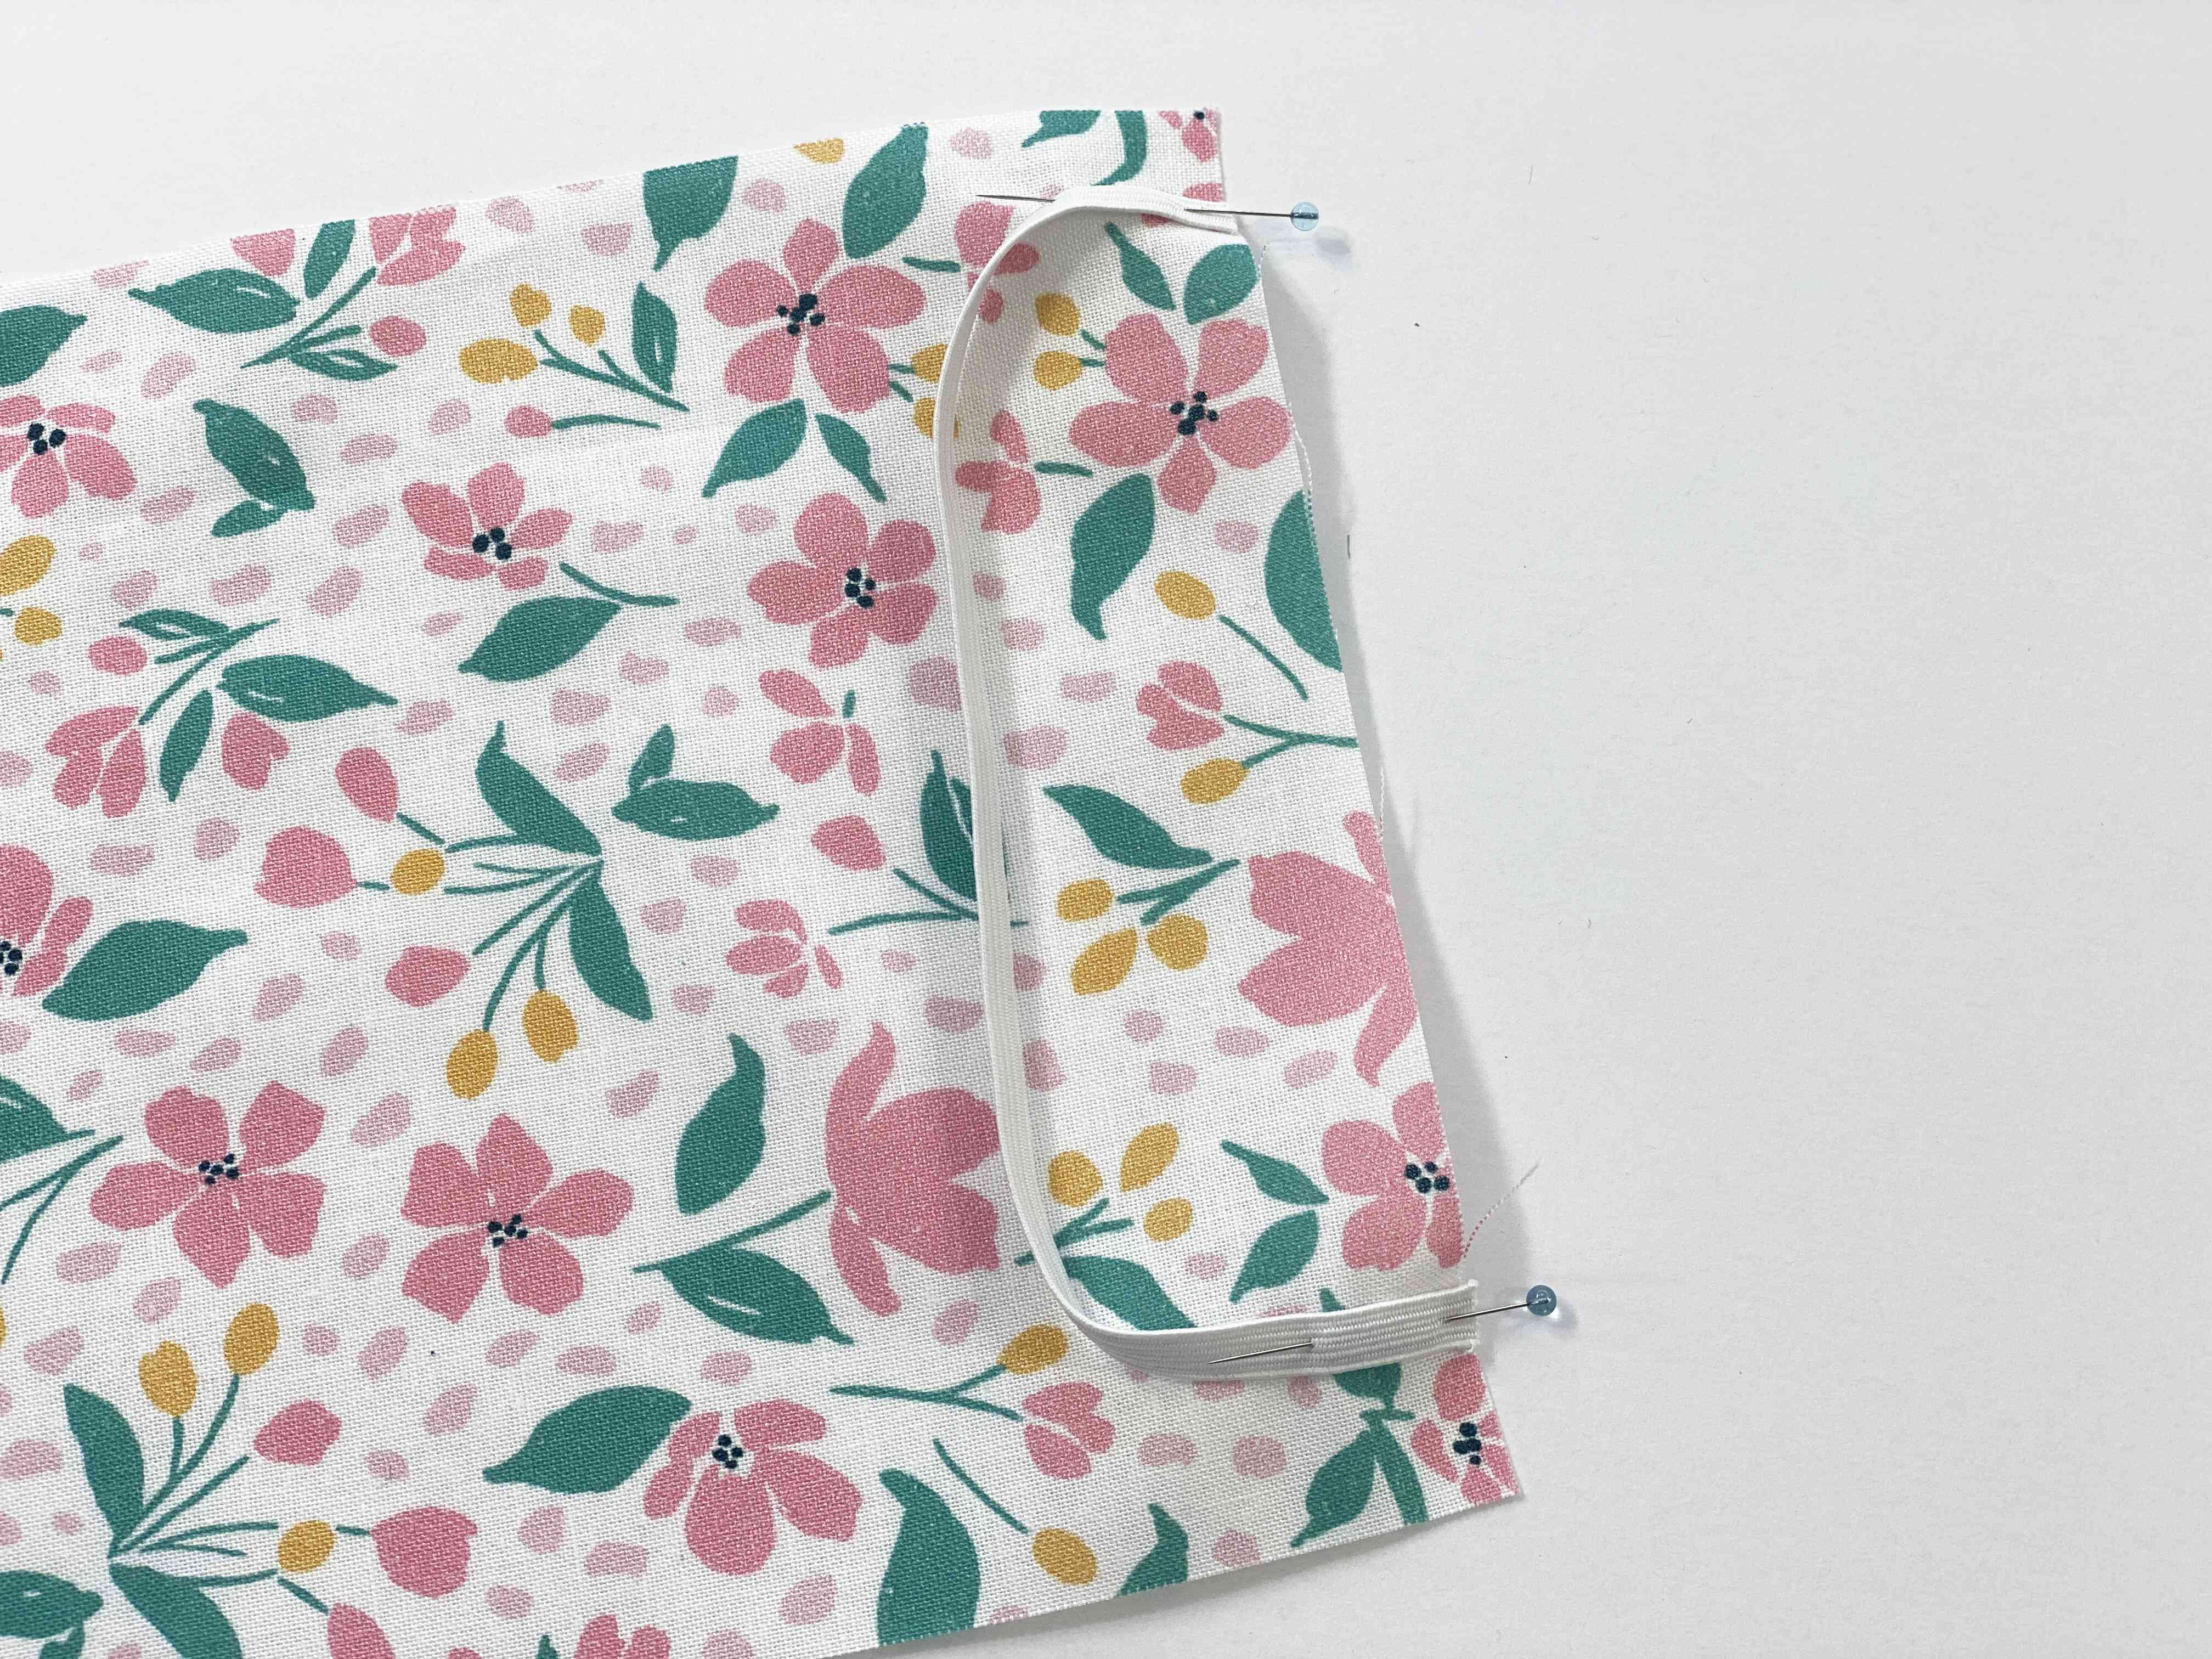 Elastic pinned to floral fabric